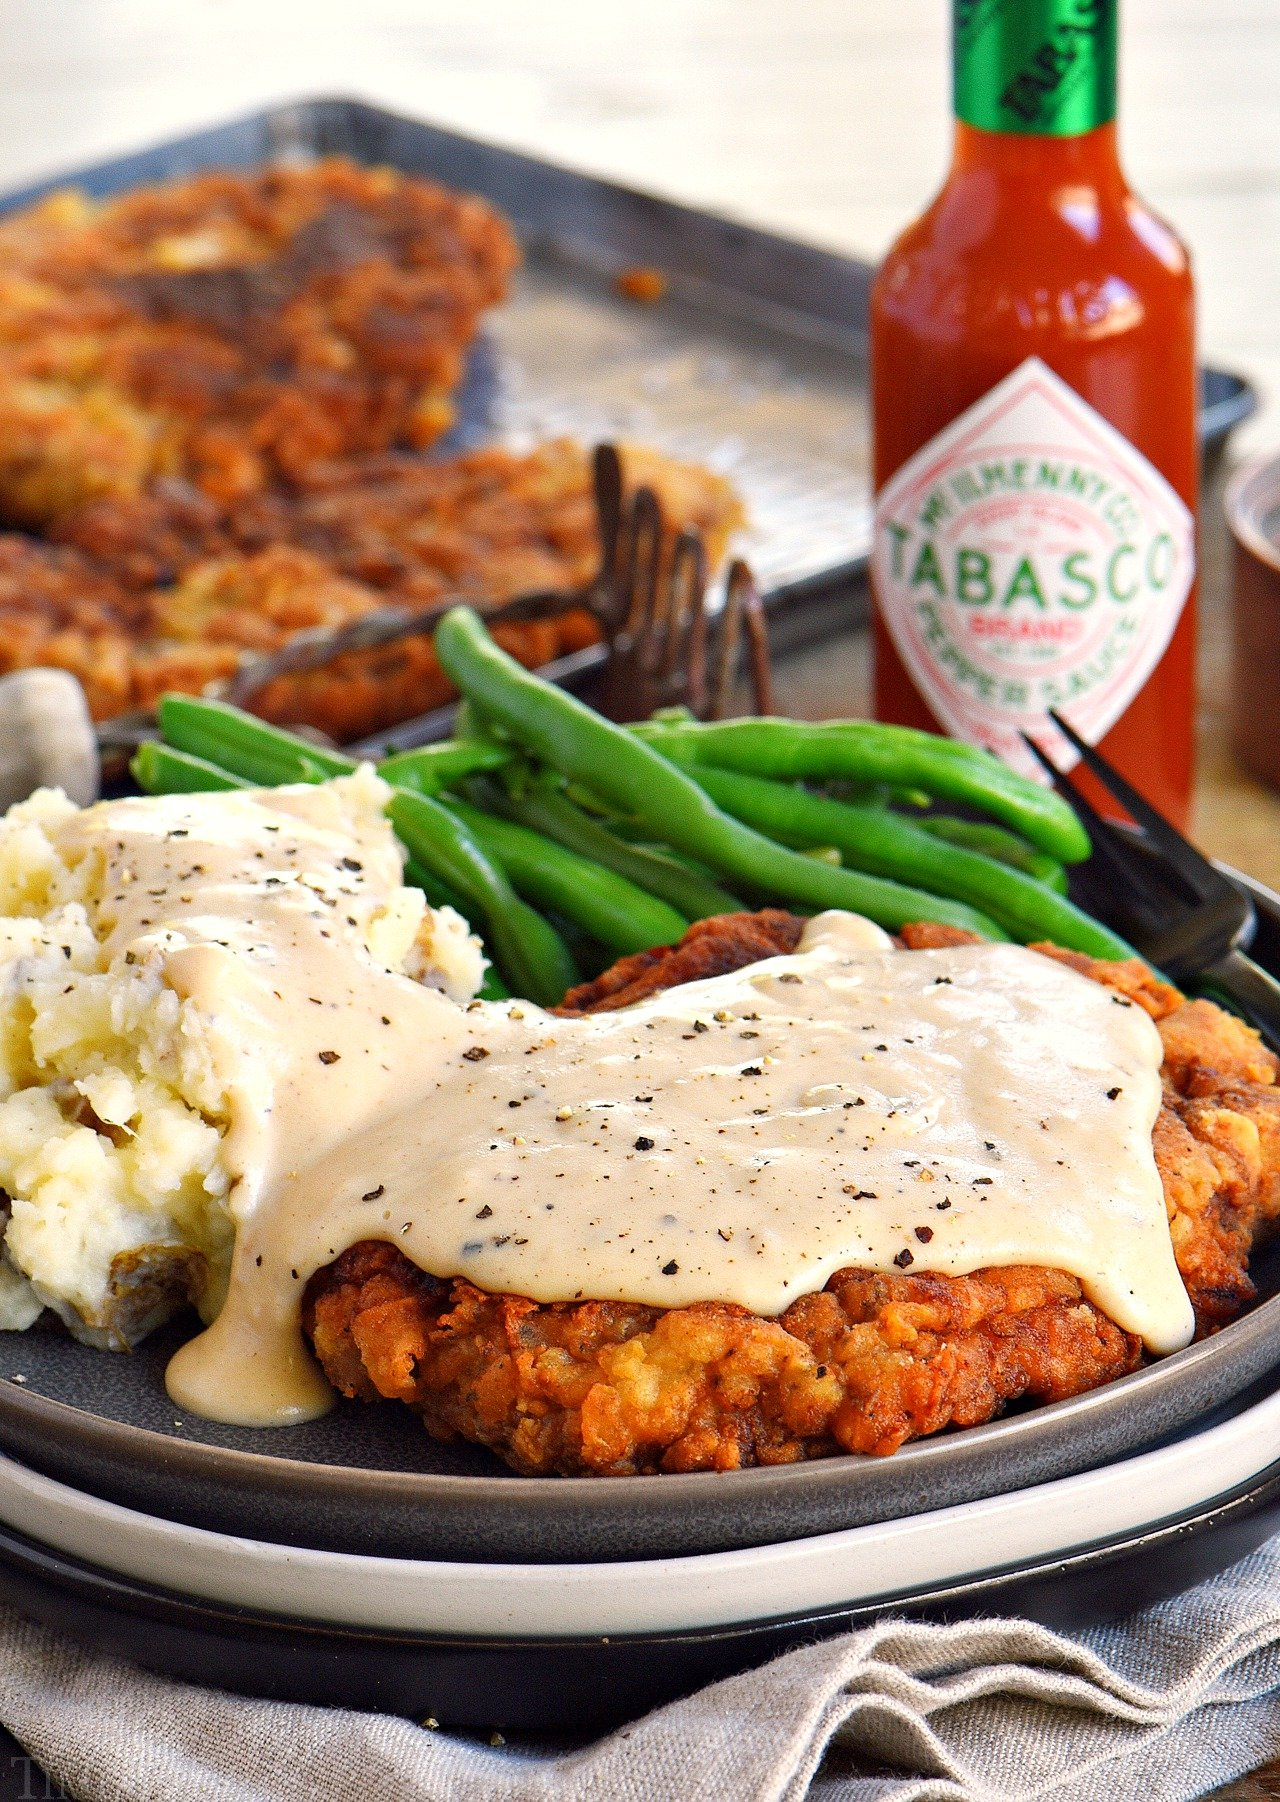 chicken-fried-steak-recipe-plated-with-mashed-potatoes-and-gravy